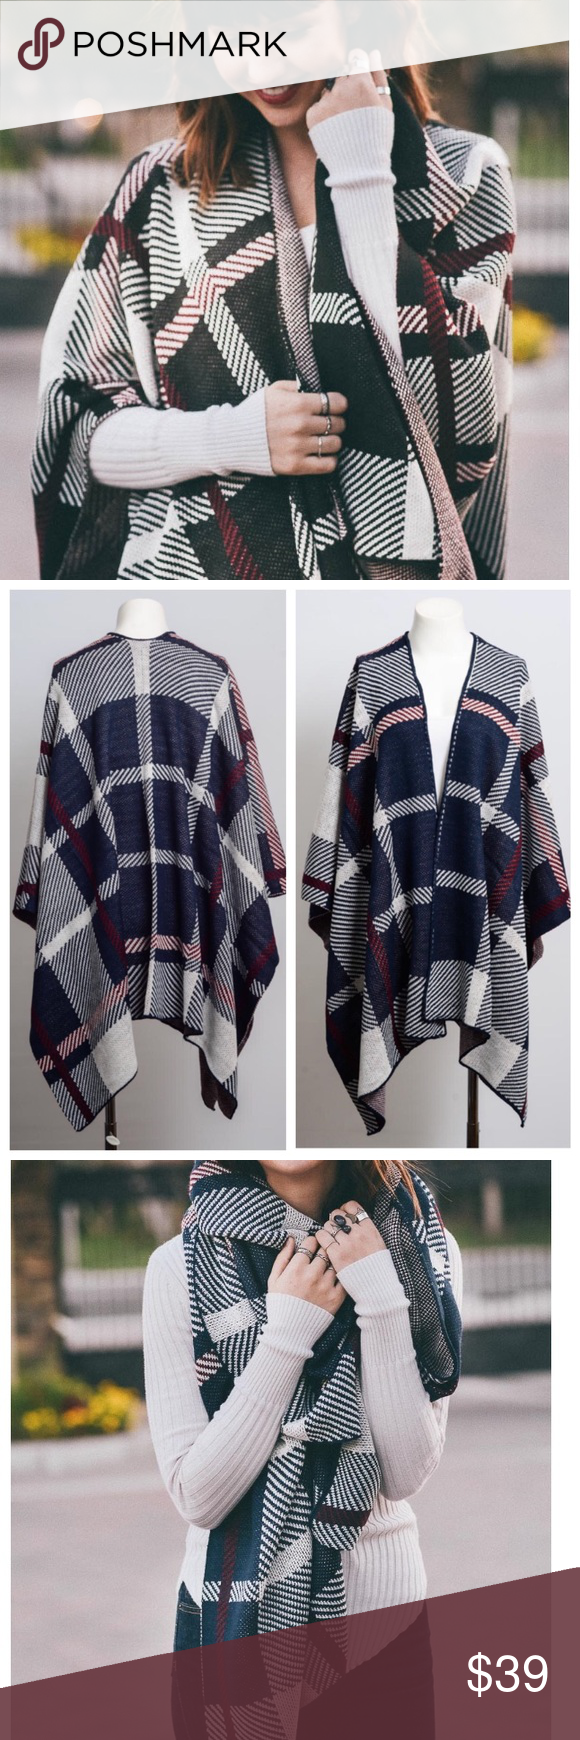 🆕 Fall Plaid Poncho & Scarf COMING SOON!  PRE-ORDER NOW!  This plaid poncho is sure to make a statement this fall and winter season.  Pair it up with a cute set of tall or short boots.  Wrap up to stay warm or turn it into a cute chunky scarf!  No trades. Sweaters Shrugs & Ponchos